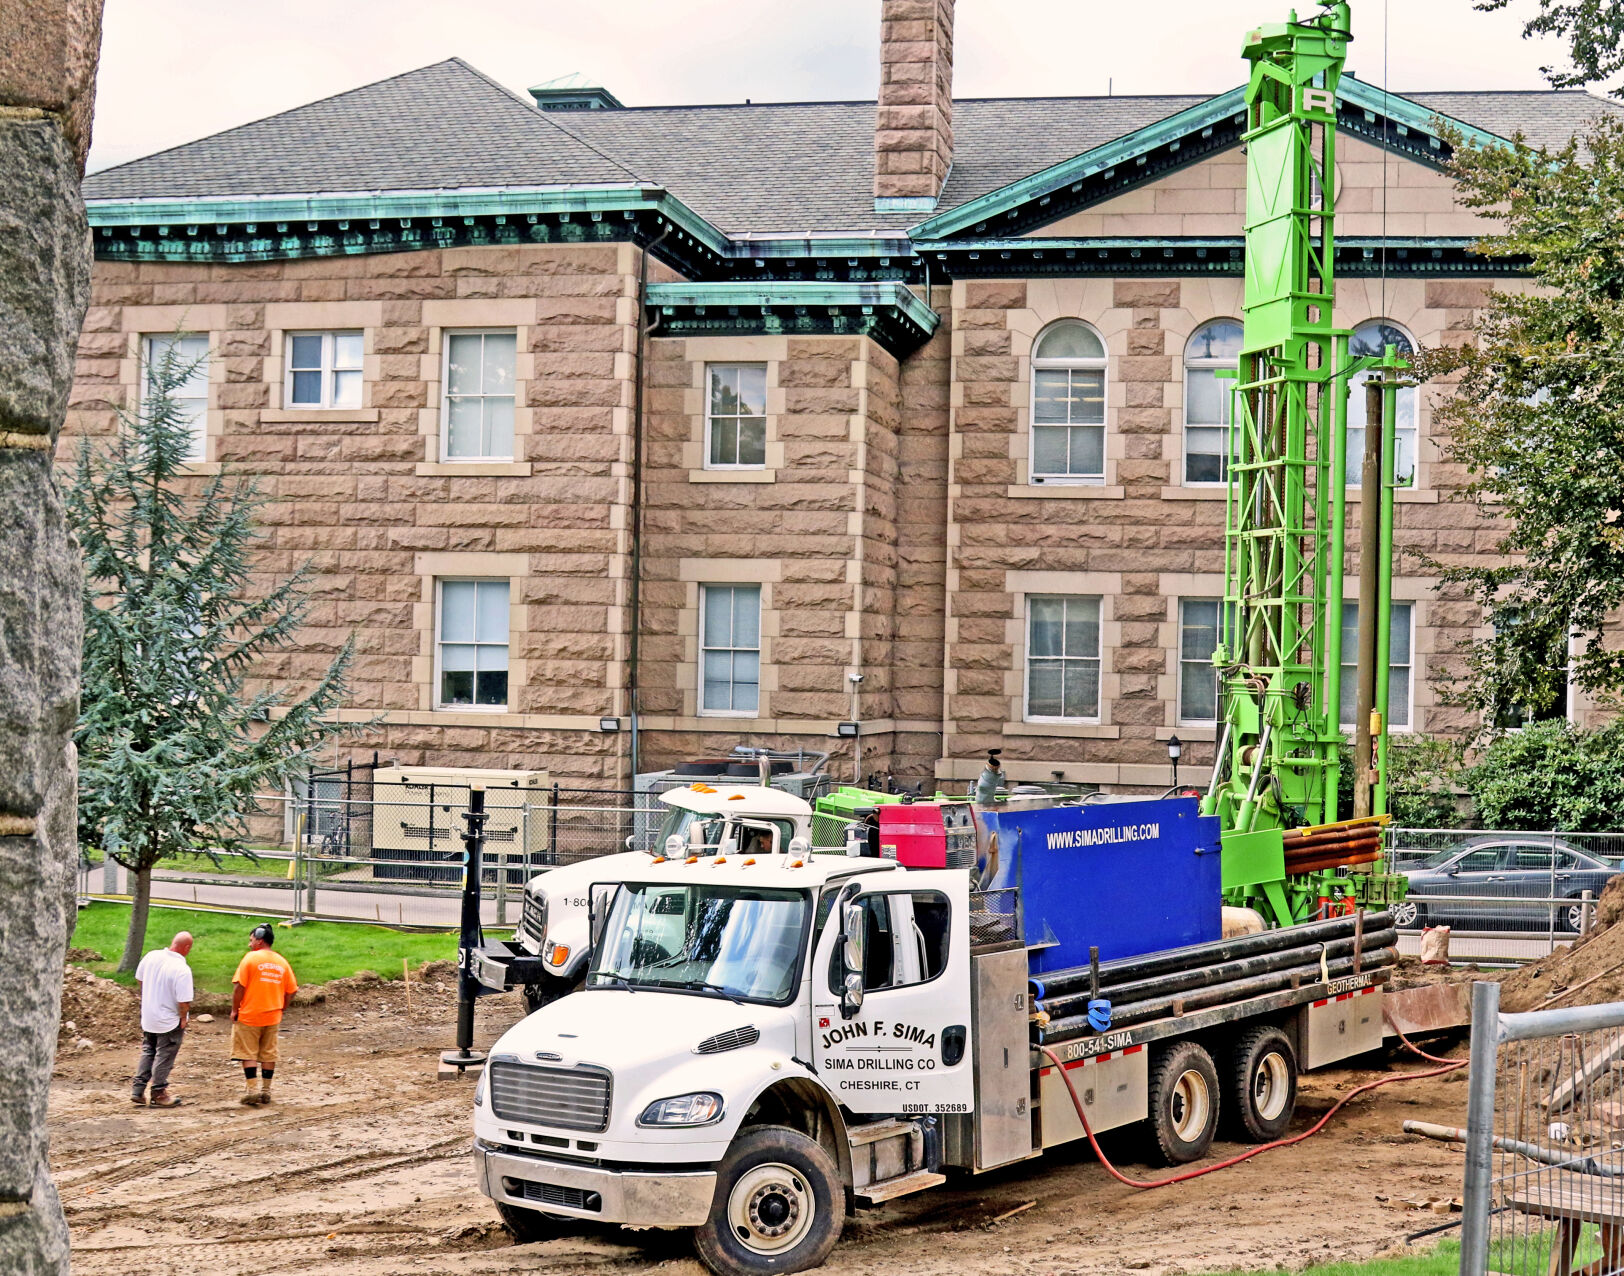 With geothermal project, Christ Church invests in its future